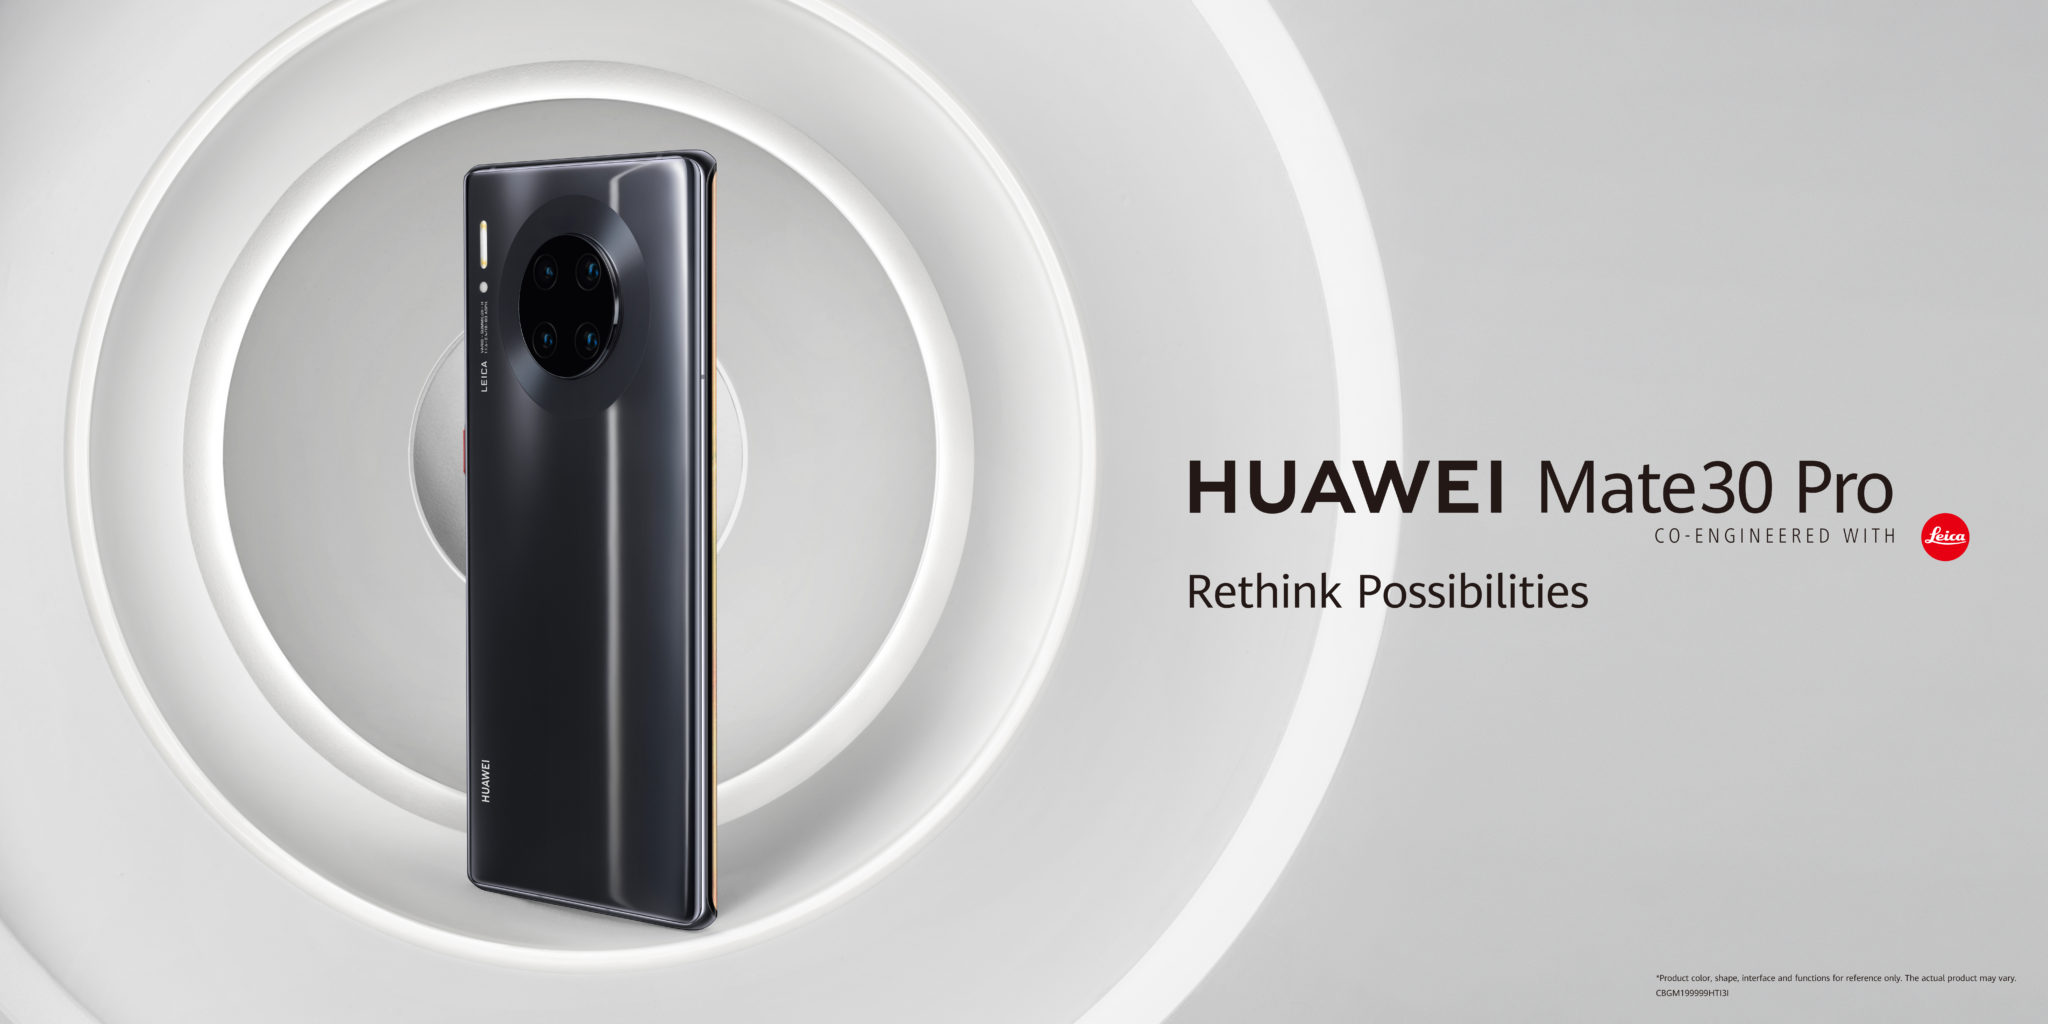 Huawei Mate30Pro the centrepiece of the Smart Life ecosystem